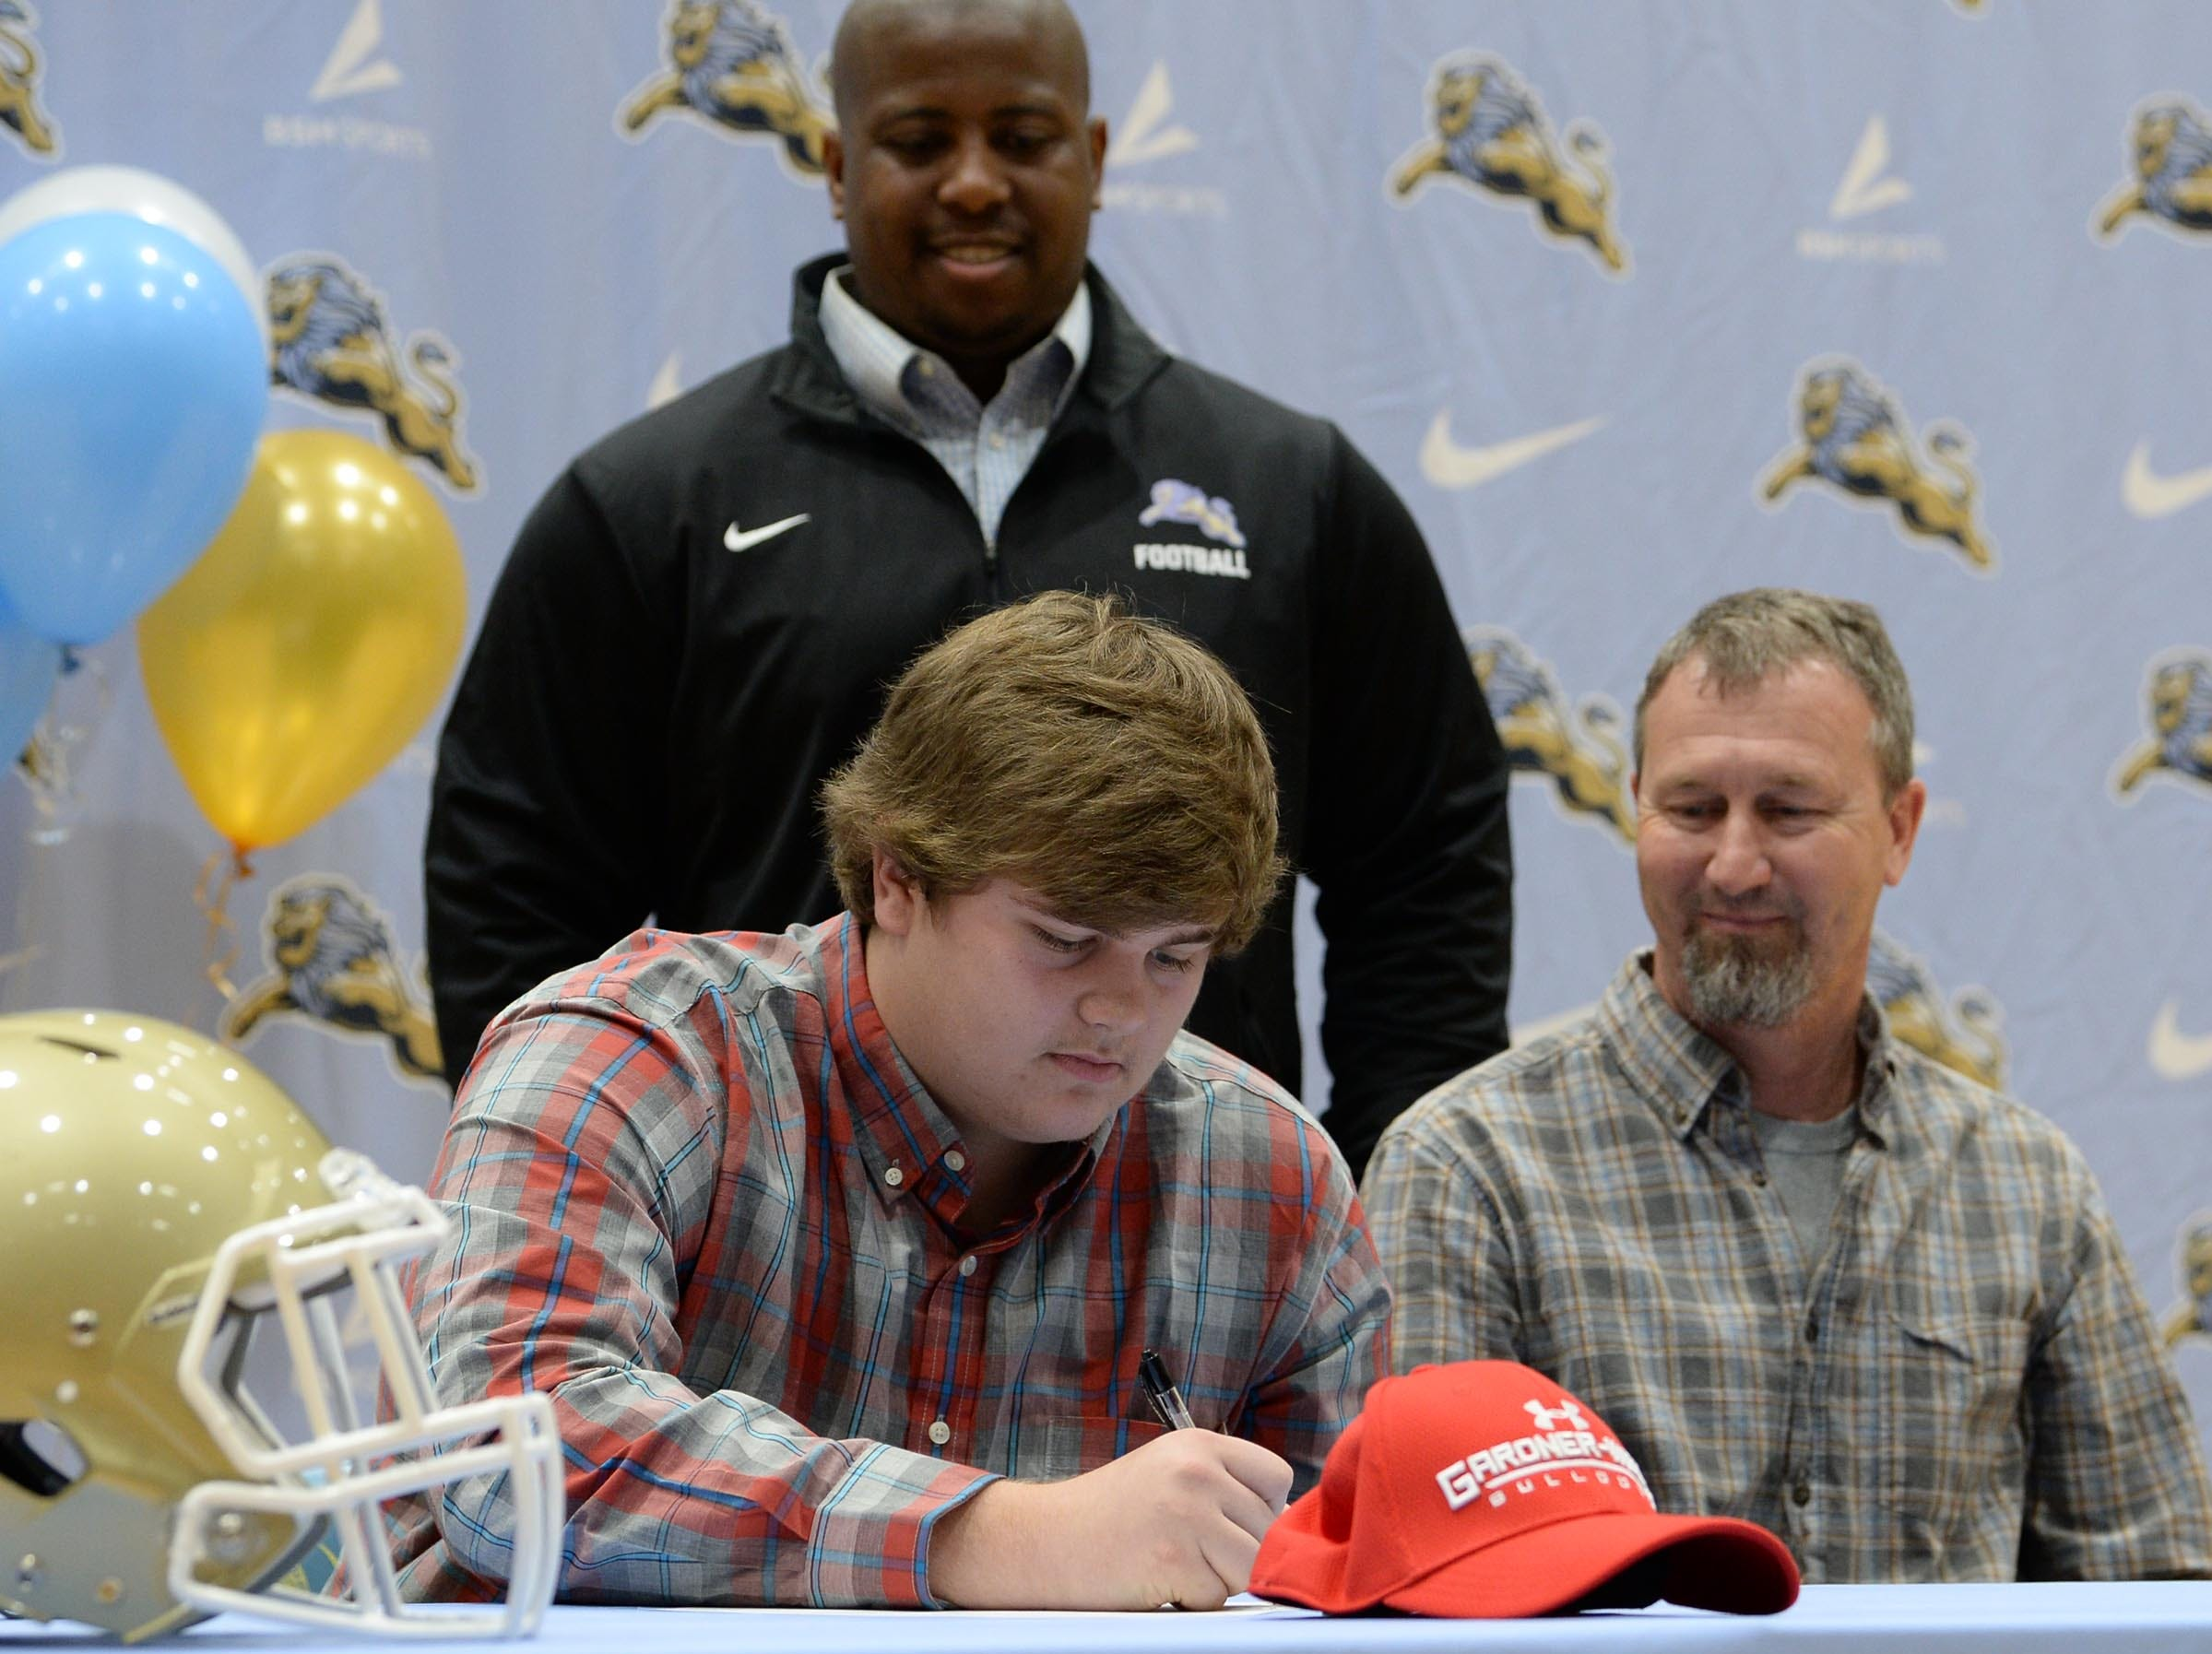 Gardner Webb football preferred walk on signee Cambel Guffee signs near father Gary Guffee and D.W. Daniel coach Jeff Fruster during National Letter of Intent signing day in Central Wednesday.